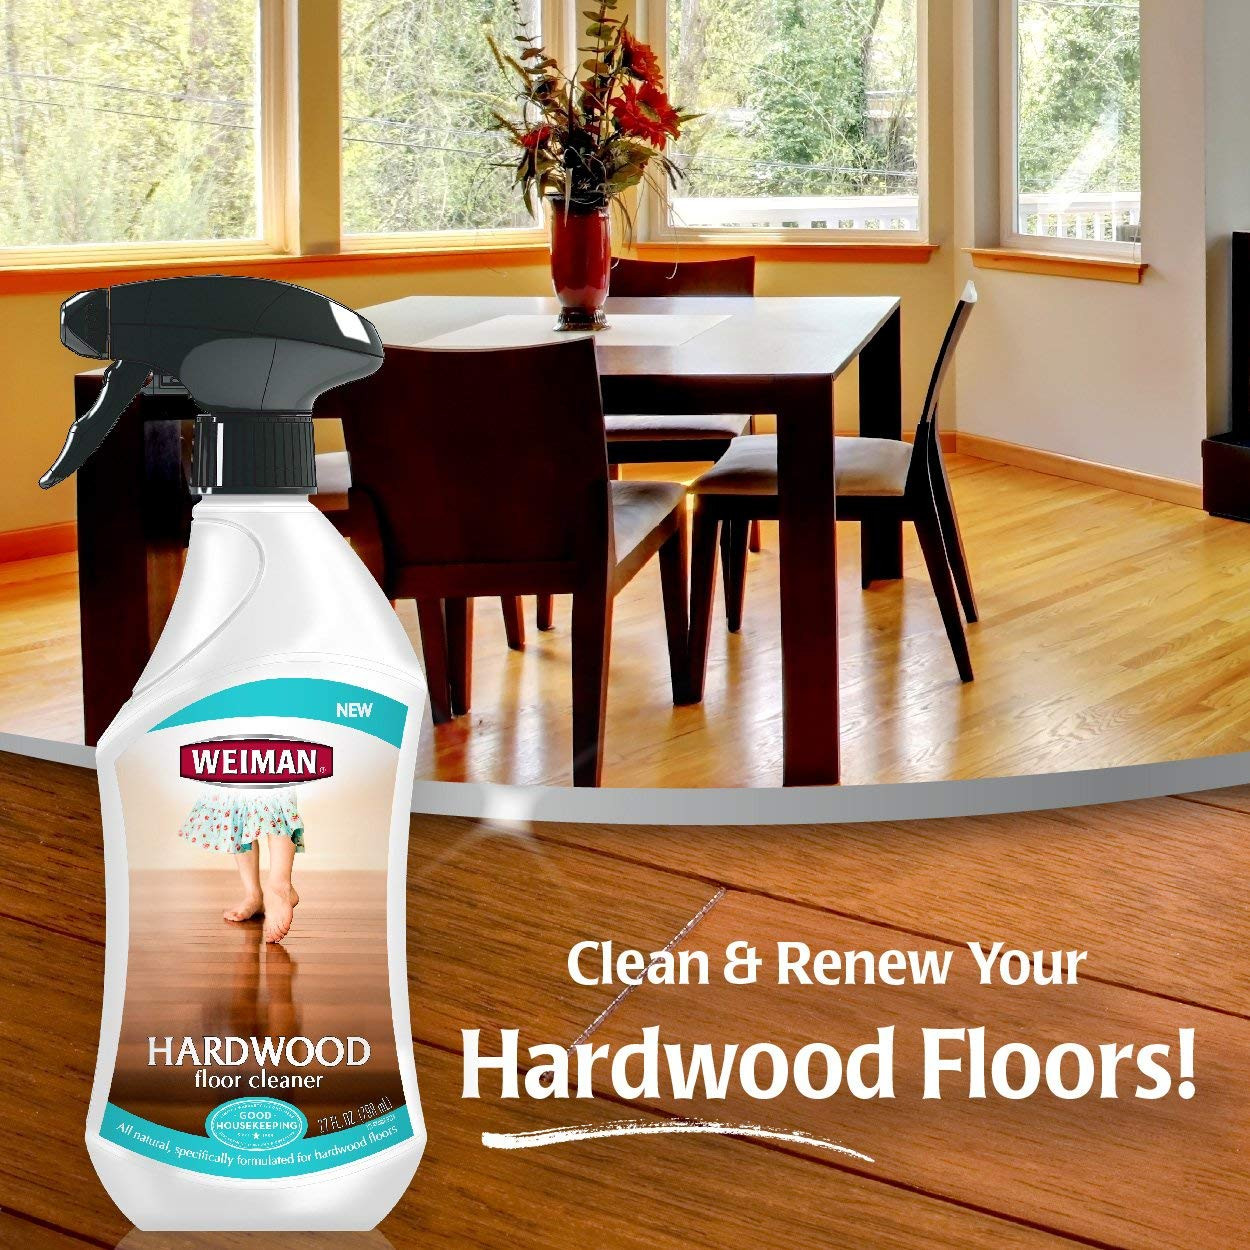 Ash Hardwood Flooring Prices Of Amazon Com Weiman Hardwood Floor Cleaner Surface Safe No Harsh Intended for Amazon Com Weiman Hardwood Floor Cleaner Surface Safe No Harsh Scent Safe for Use Around Kids and Pets Residue Free 27 Oz Trigger Home Kitchen